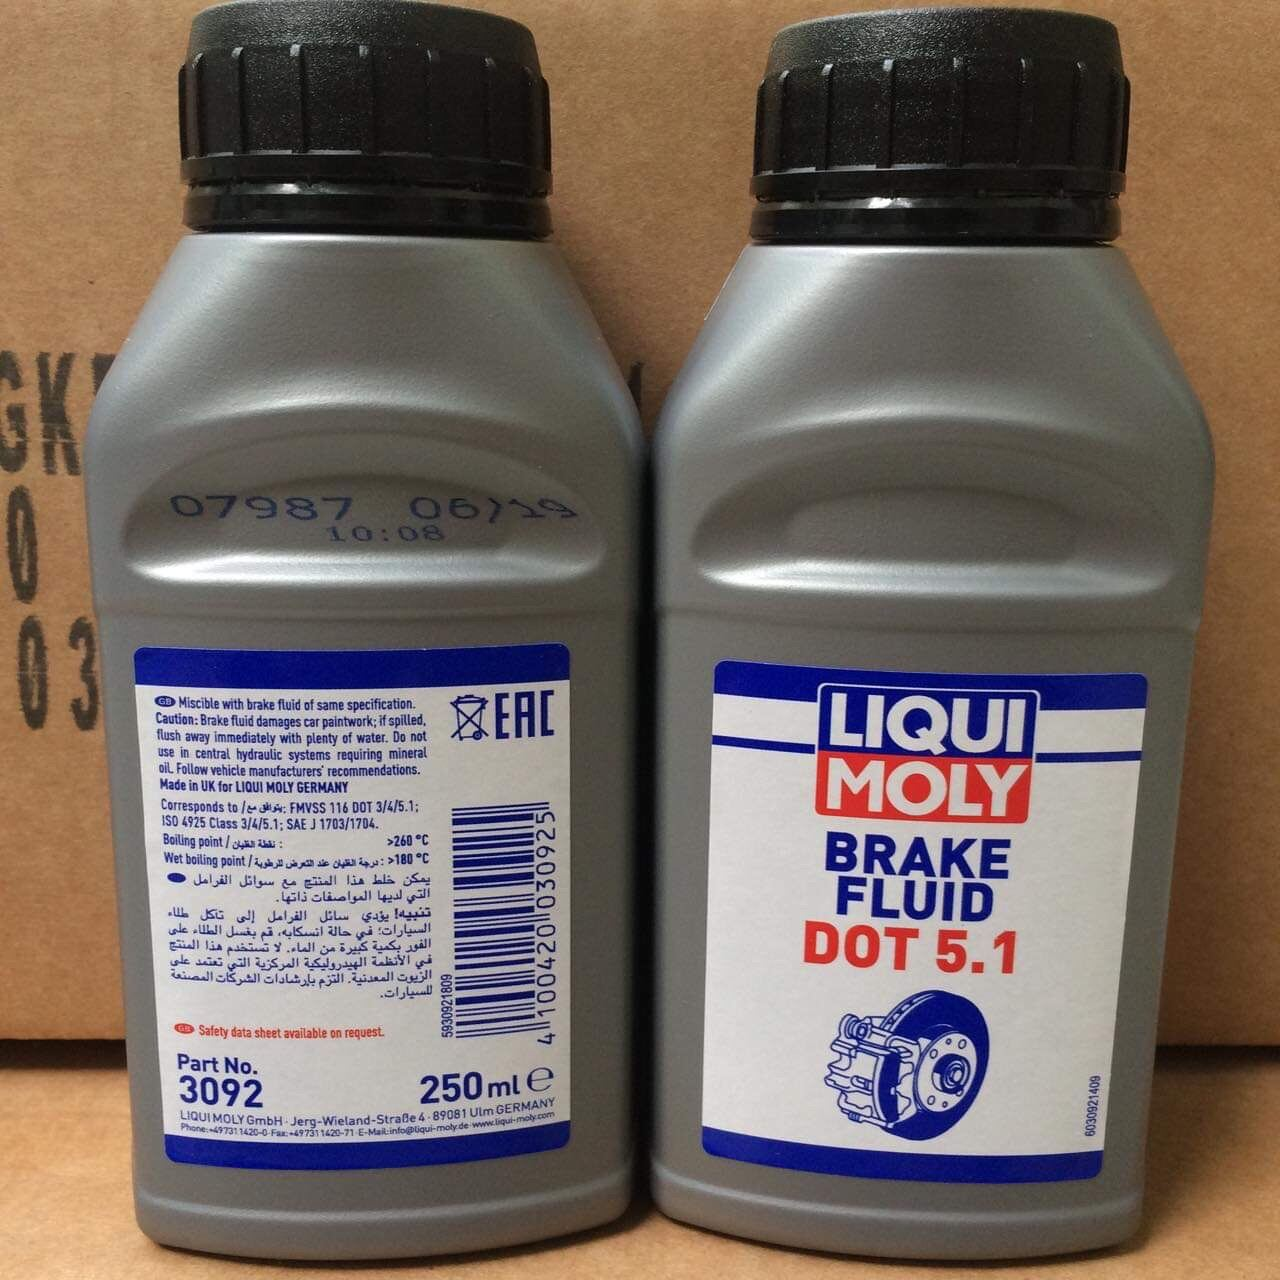 Dầu Thắng Cao Cấp Cho Hệ Thống ABS Liqui Moly Brake Fluid DOT 5.1 Made in Germany